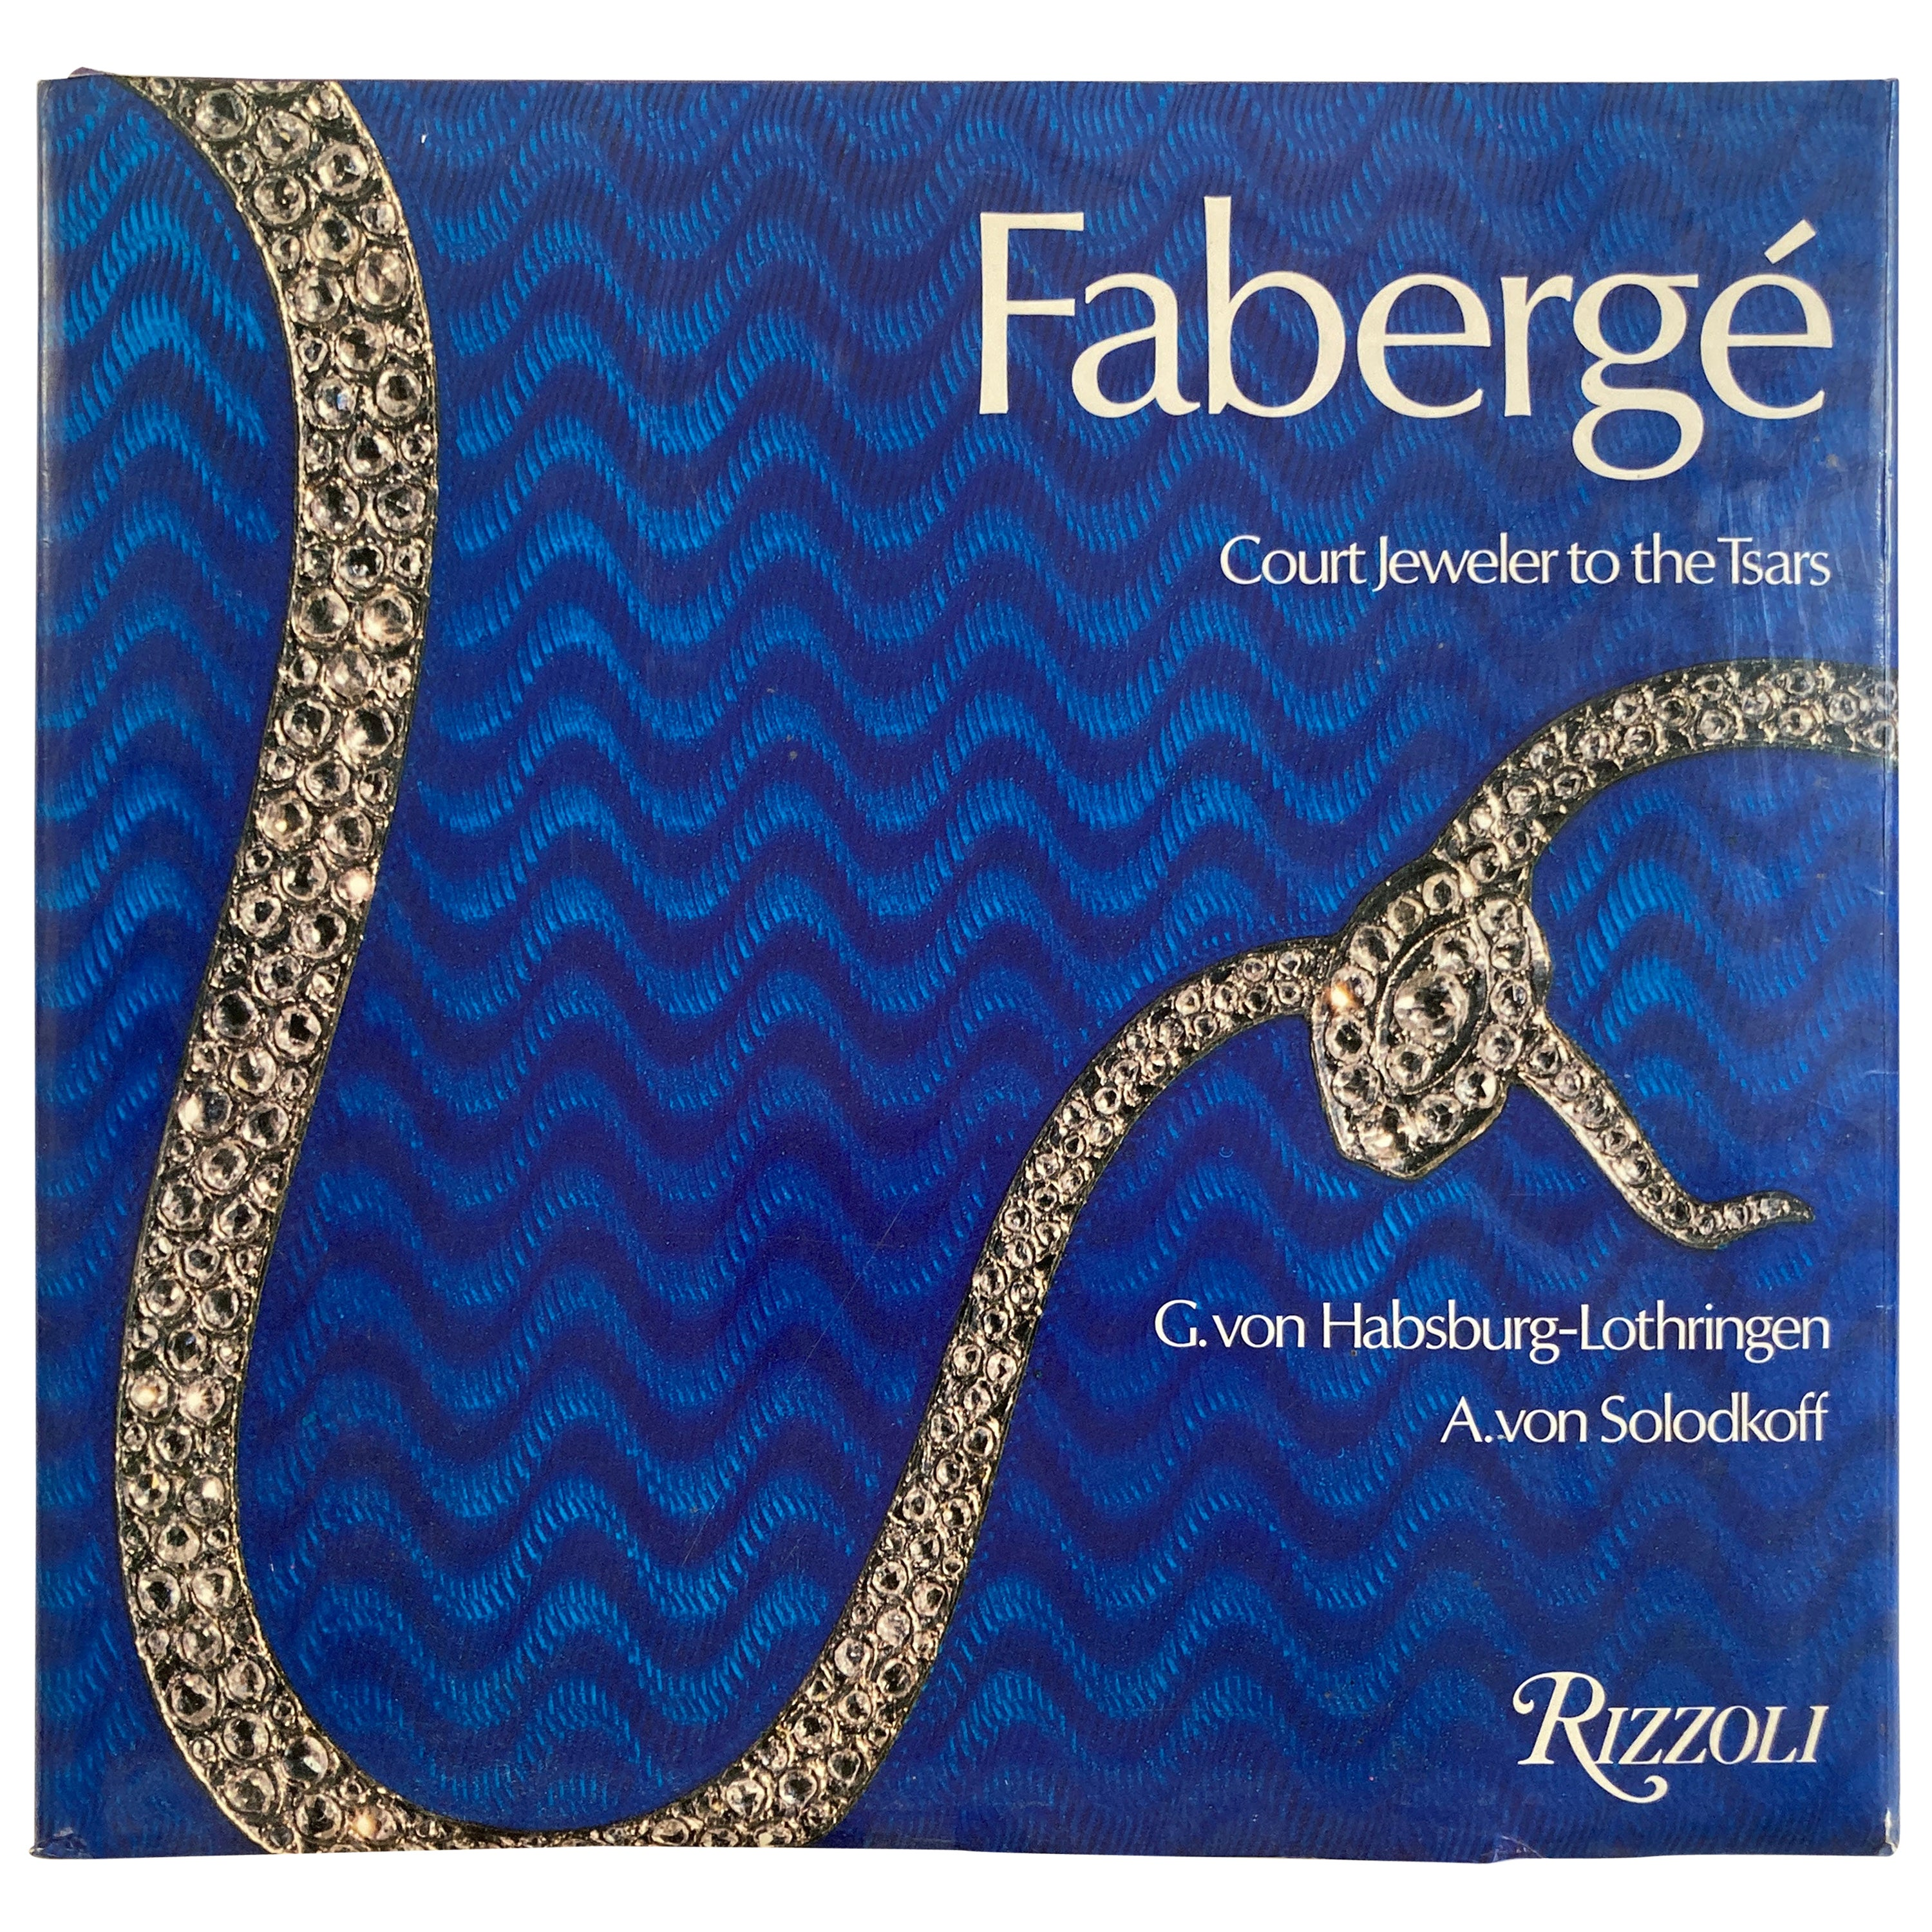 Fabergé Court Jeweler to the Tsars Hardcover Table Book